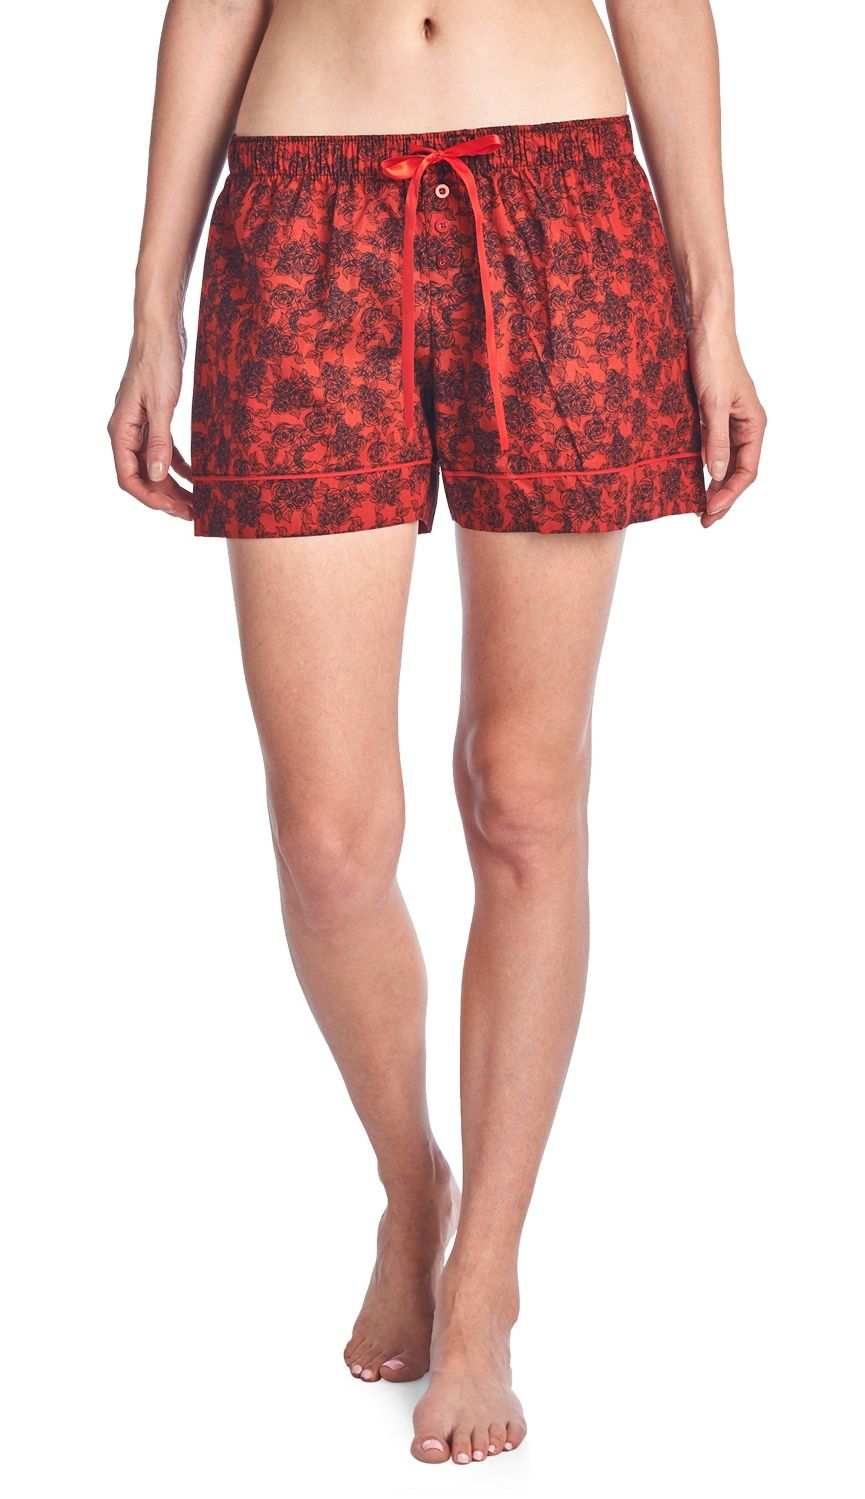 Casual Nights Women's 2 Pack Cotton Woven Lounge Boxer